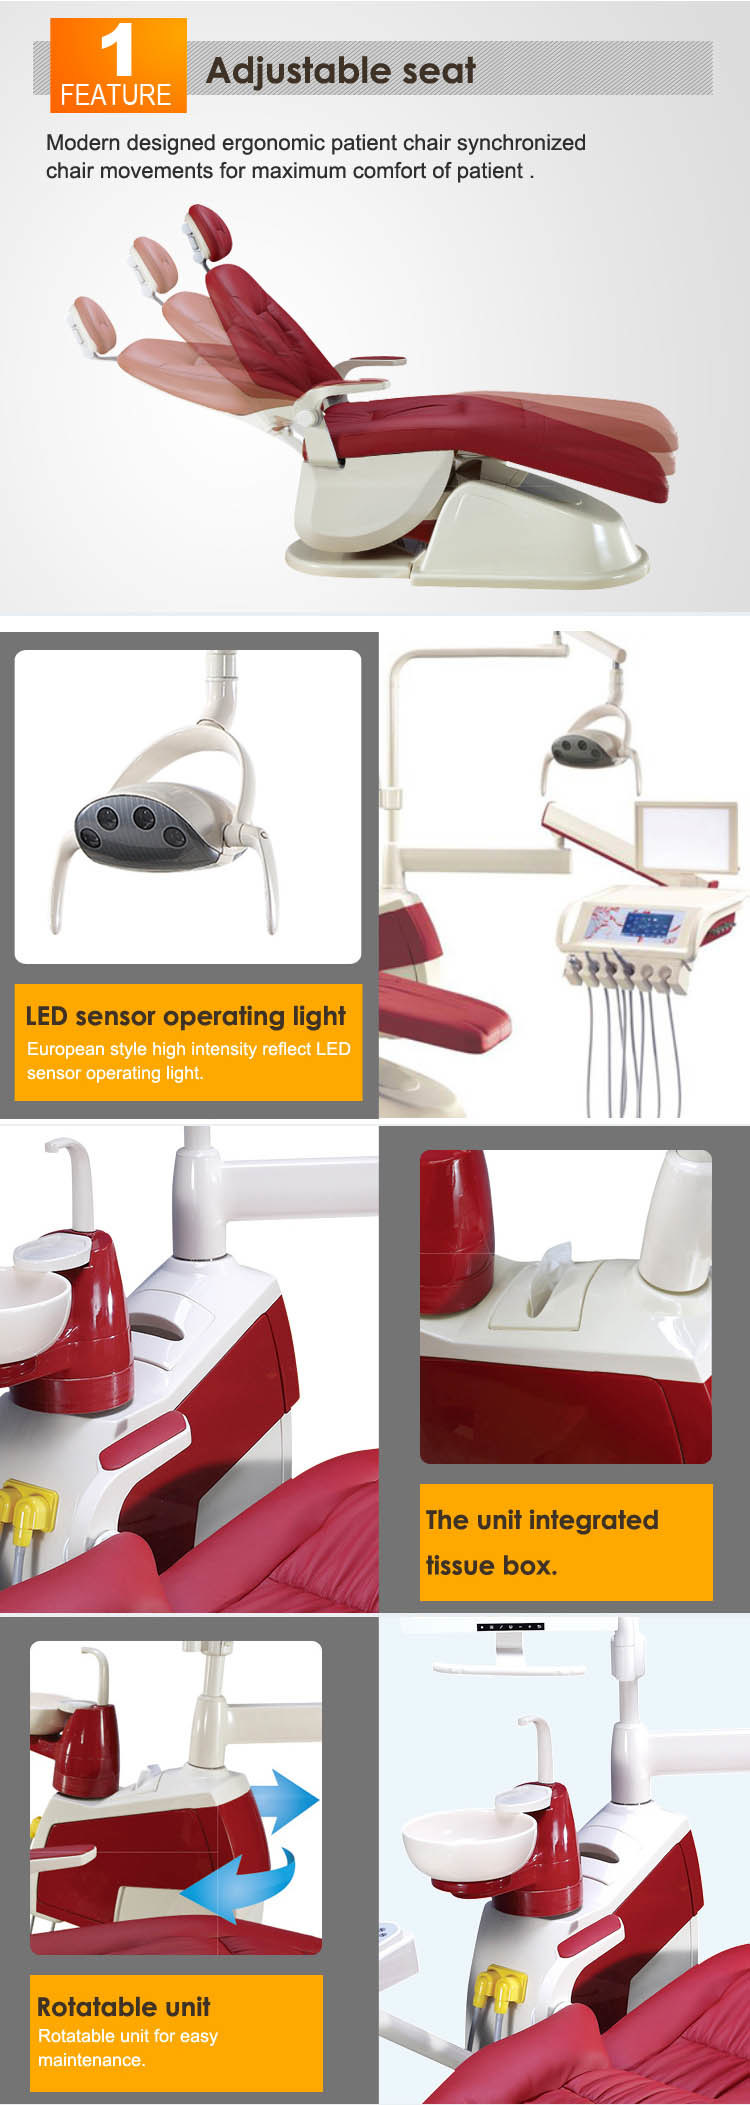 Top Quality ISO Approved Dental Chair Dental Clinic Furniture Catalogue/Galaxy Dental Chair/Dental Hygiene Stools